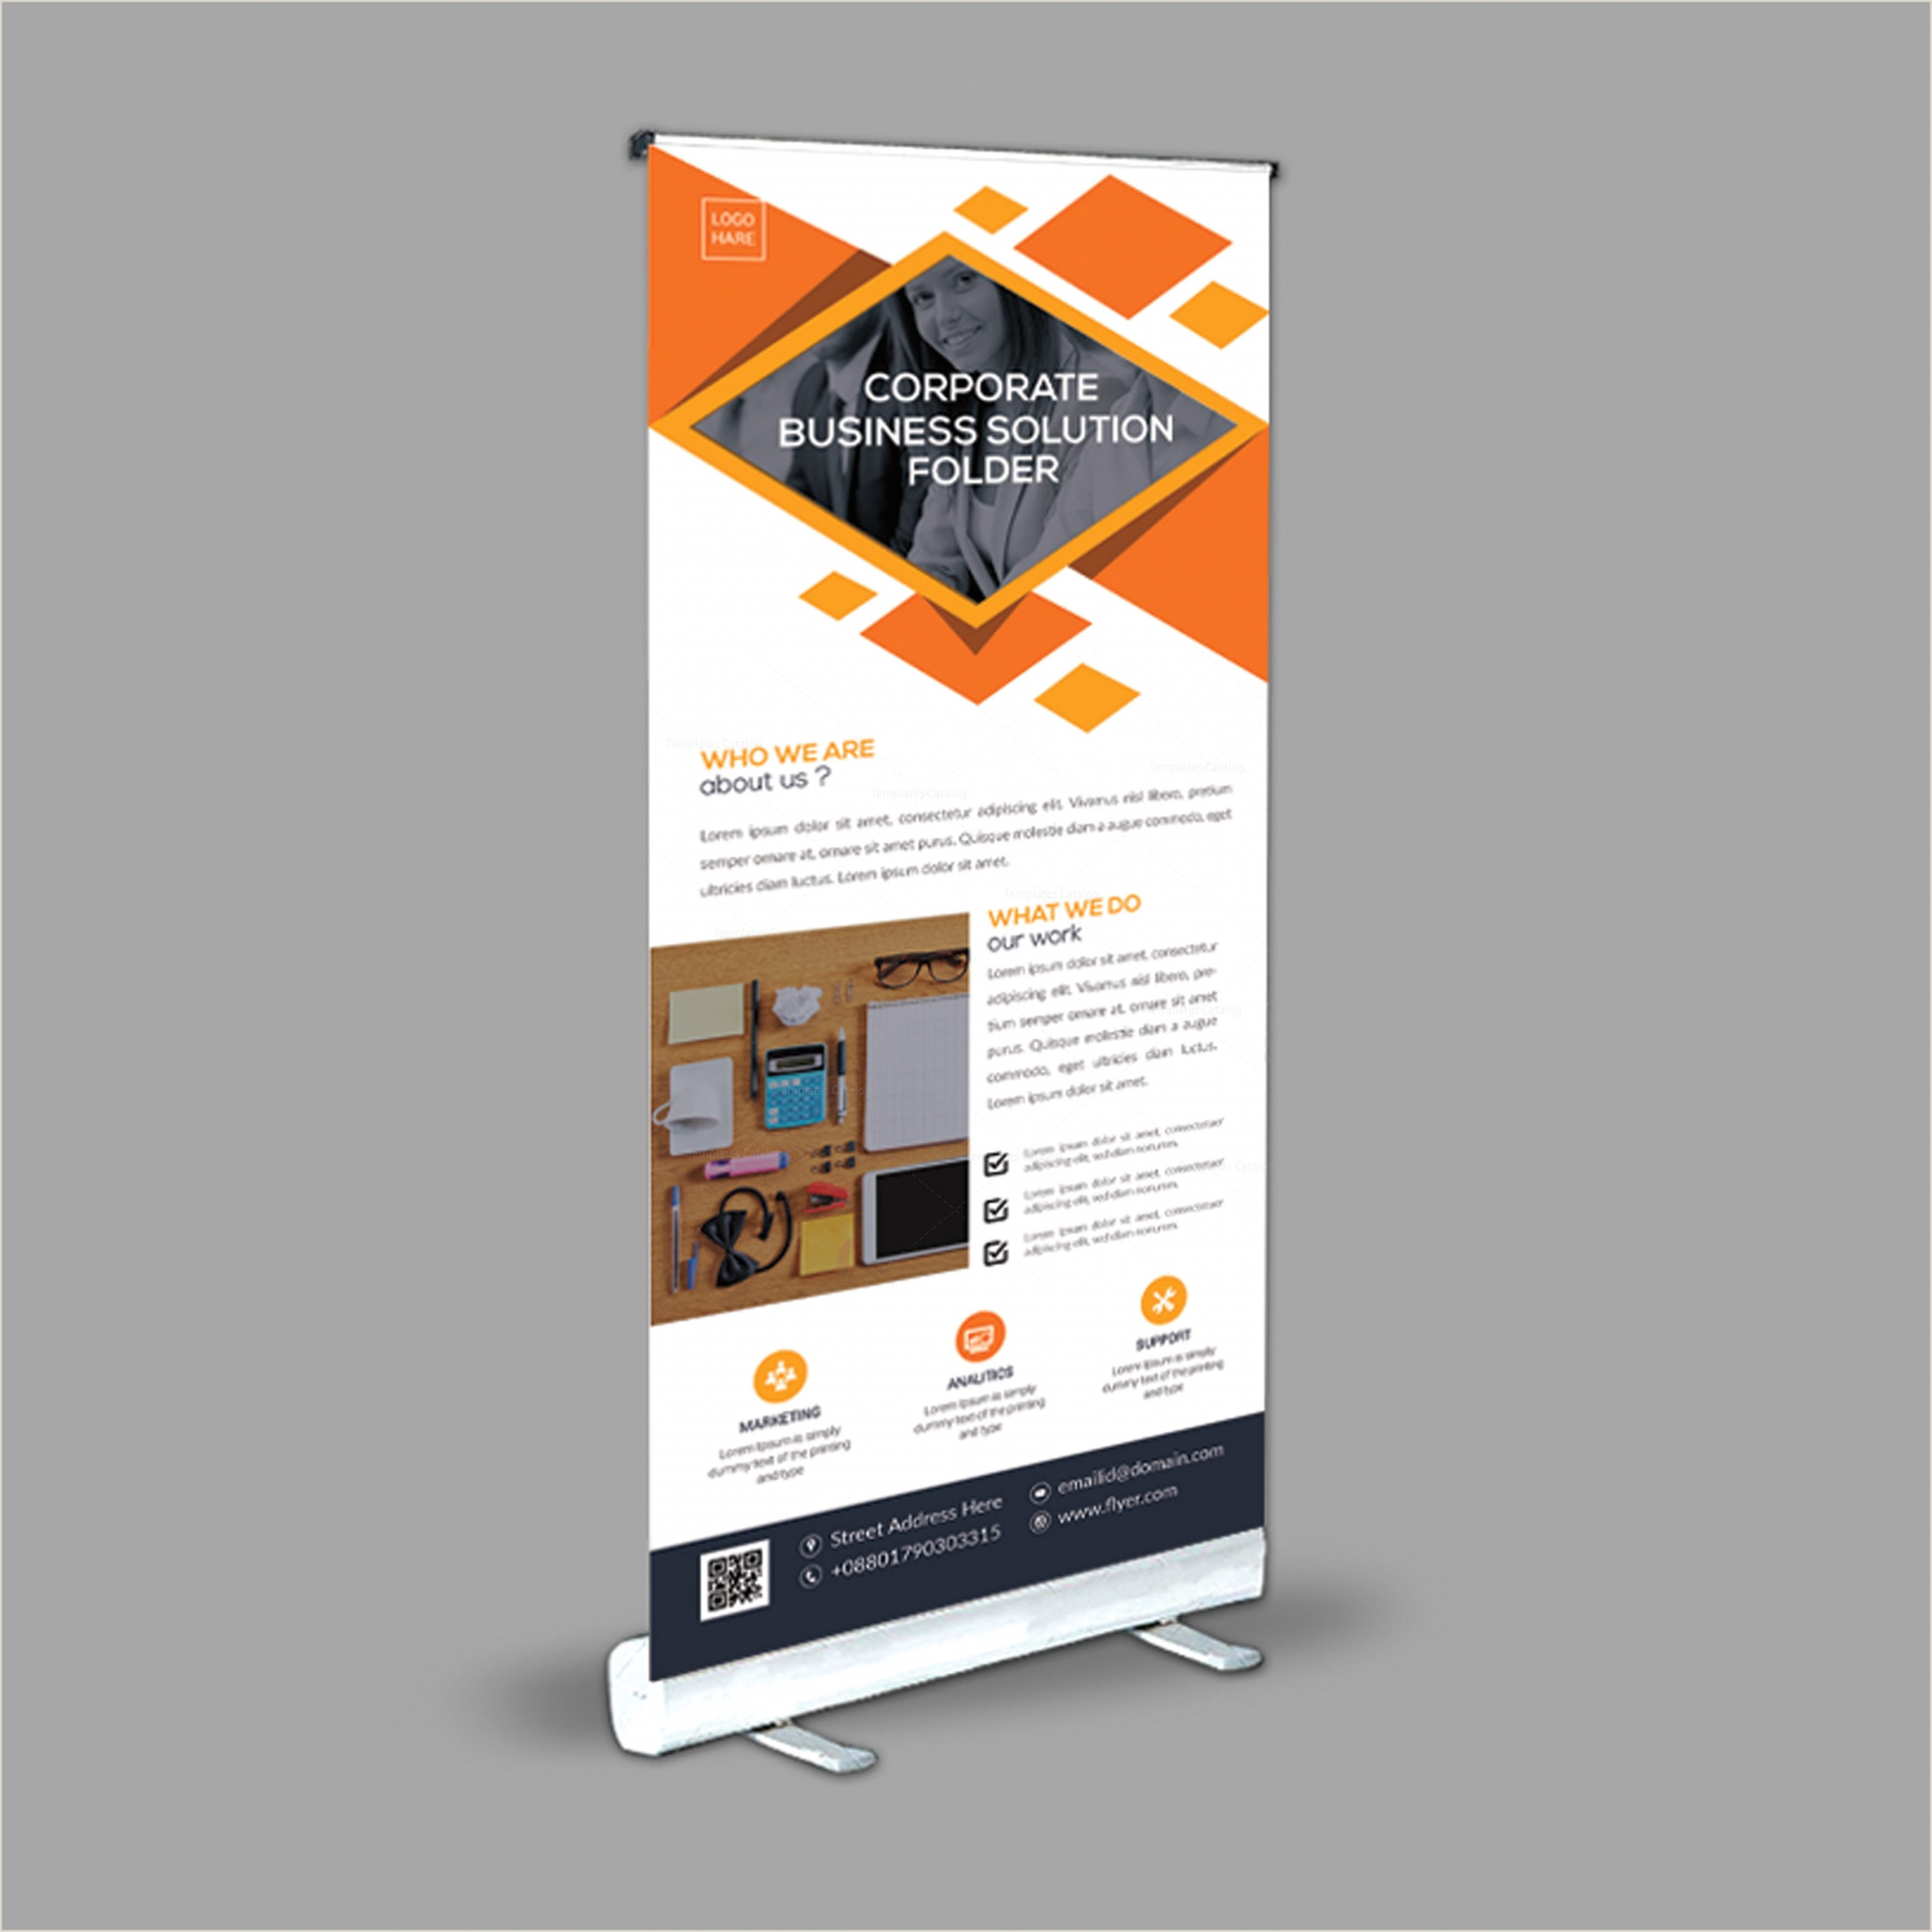 Stand Up Banners Stylish Roll Up Banner Design Template